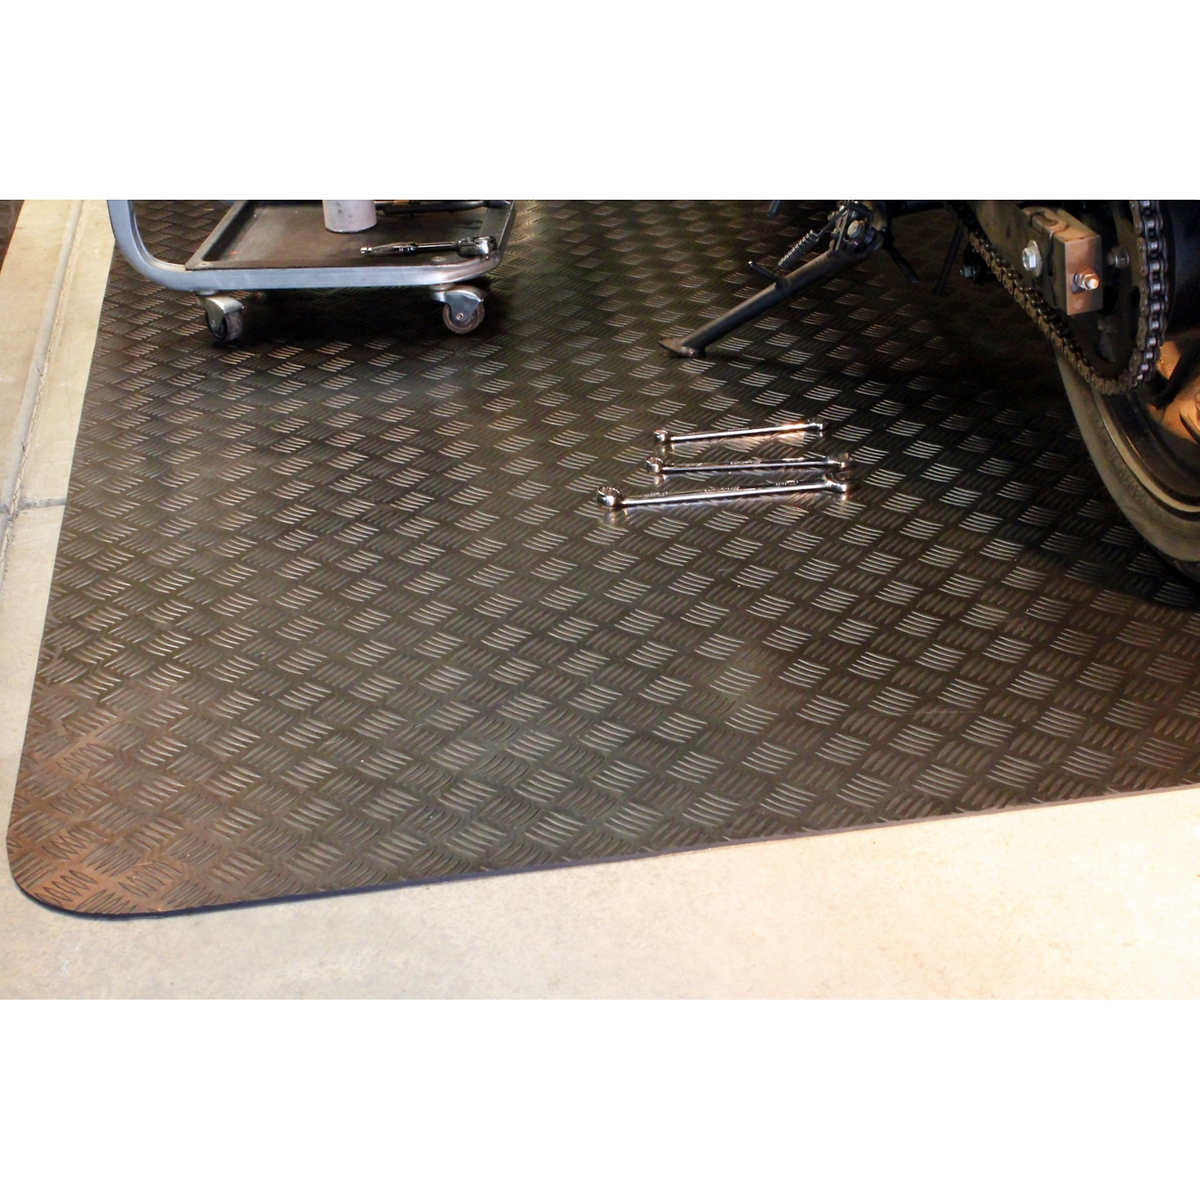 durable evermat foam product work tool interlocking floor garage mat